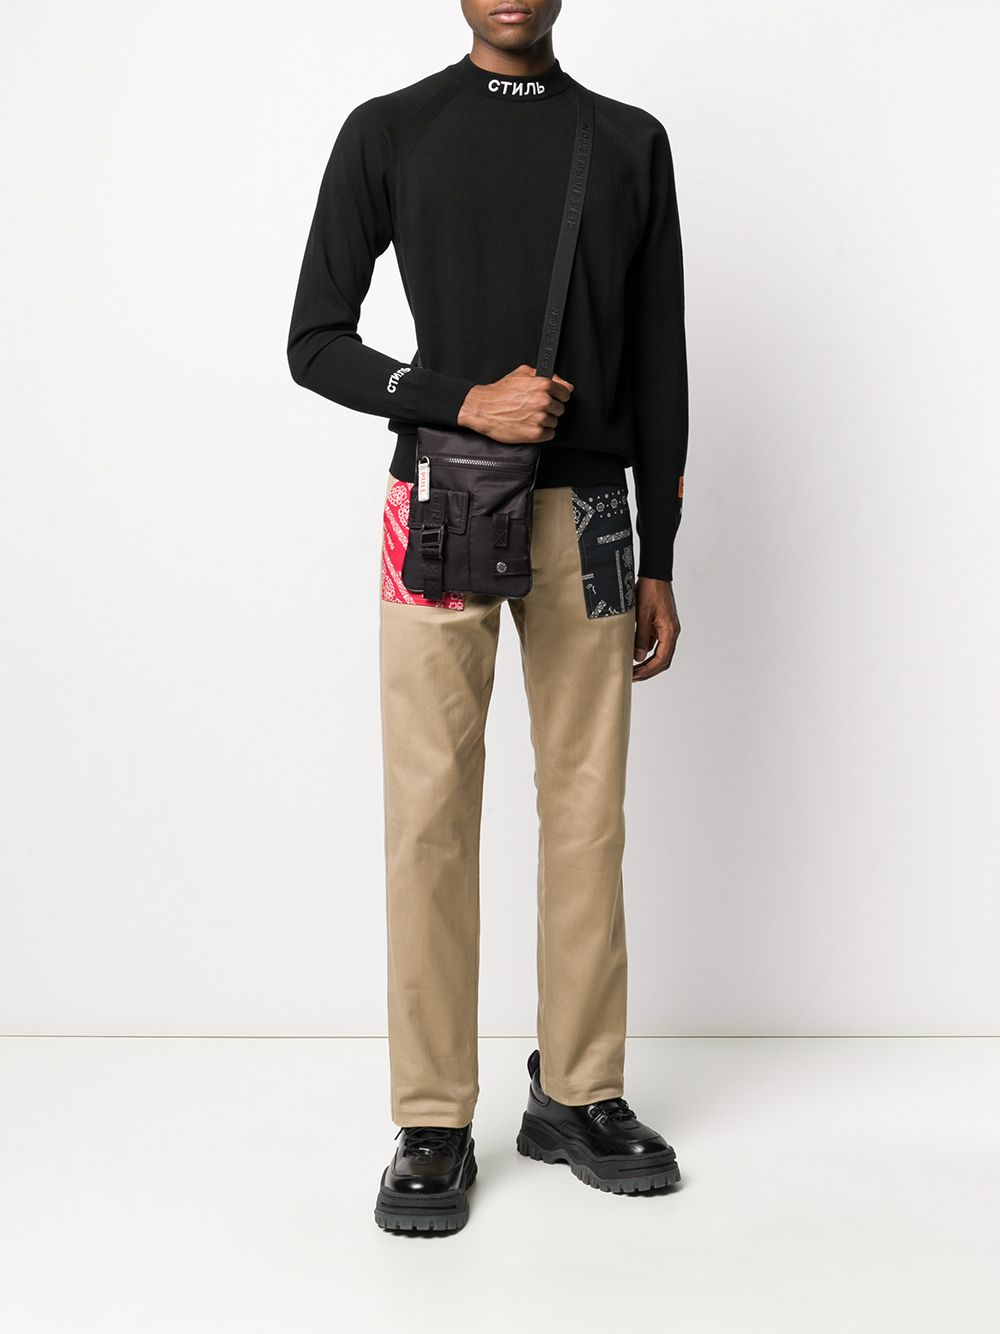 HERON PRESTON crossbody bag black